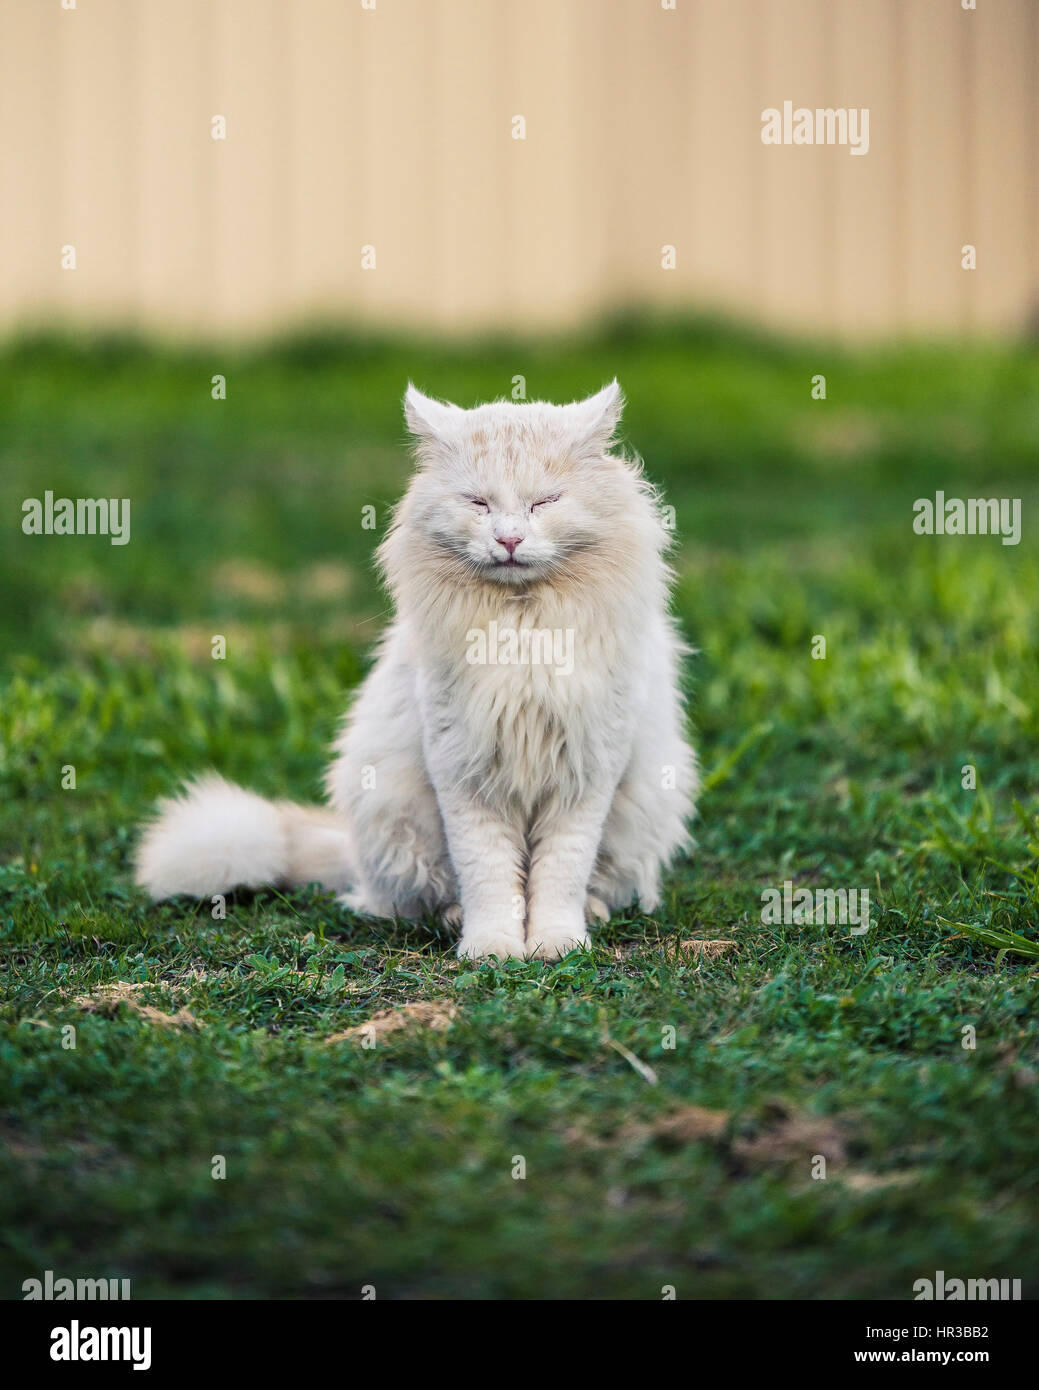 Garden Cat - Stock Image